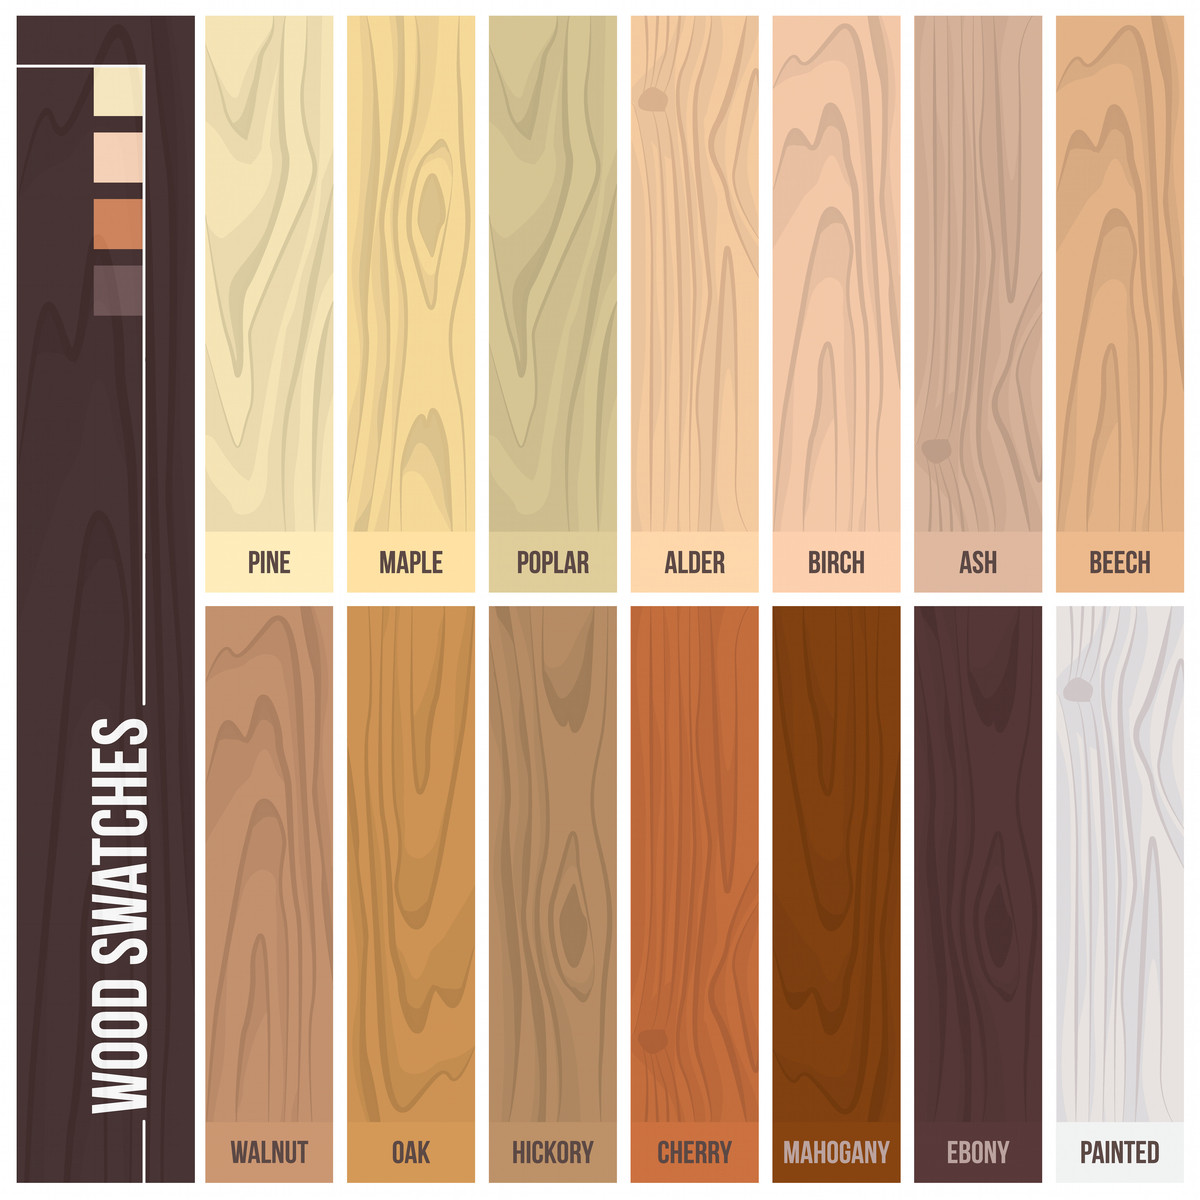 Hickory Hardwood Flooring Pros and Cons Of 12 Types Of Hardwood Flooring Species Styles Edging Dimensions with Regard to Types Of Hardwood Flooring Illustrated Guide